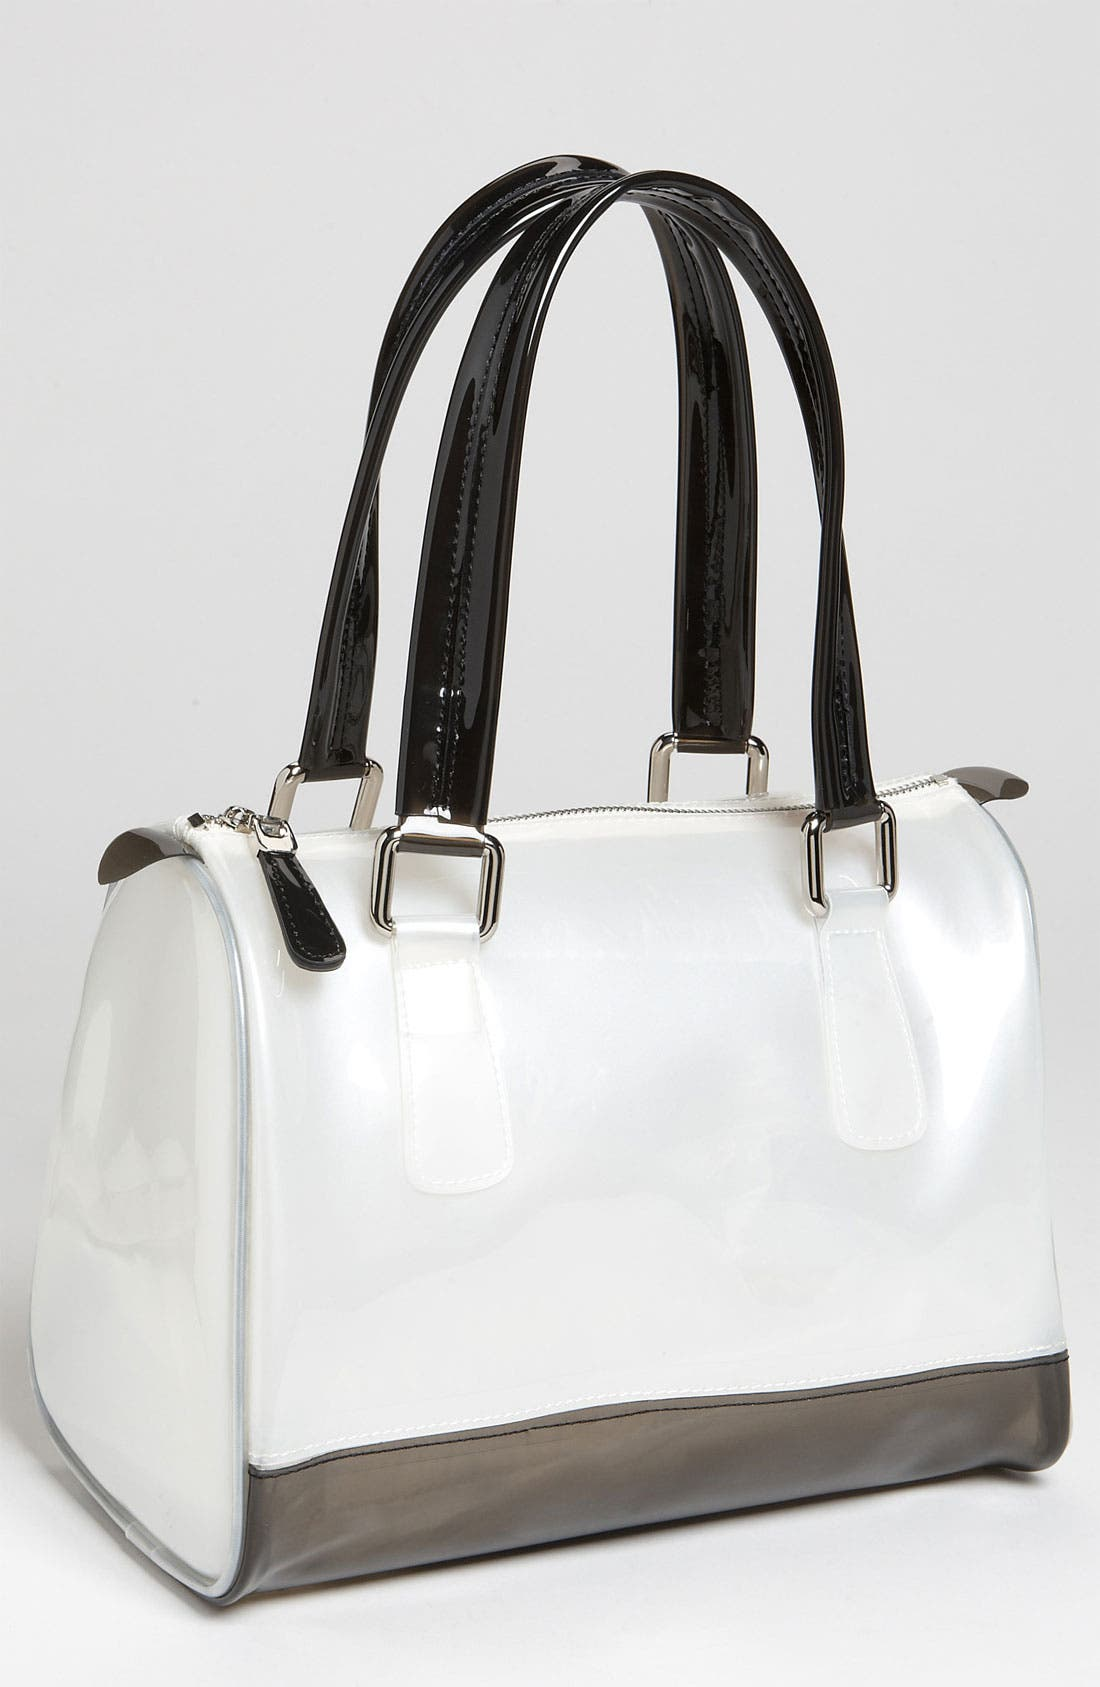 Main Image - Melie Bianco 'Sophie' Shiny Jelly Satchel